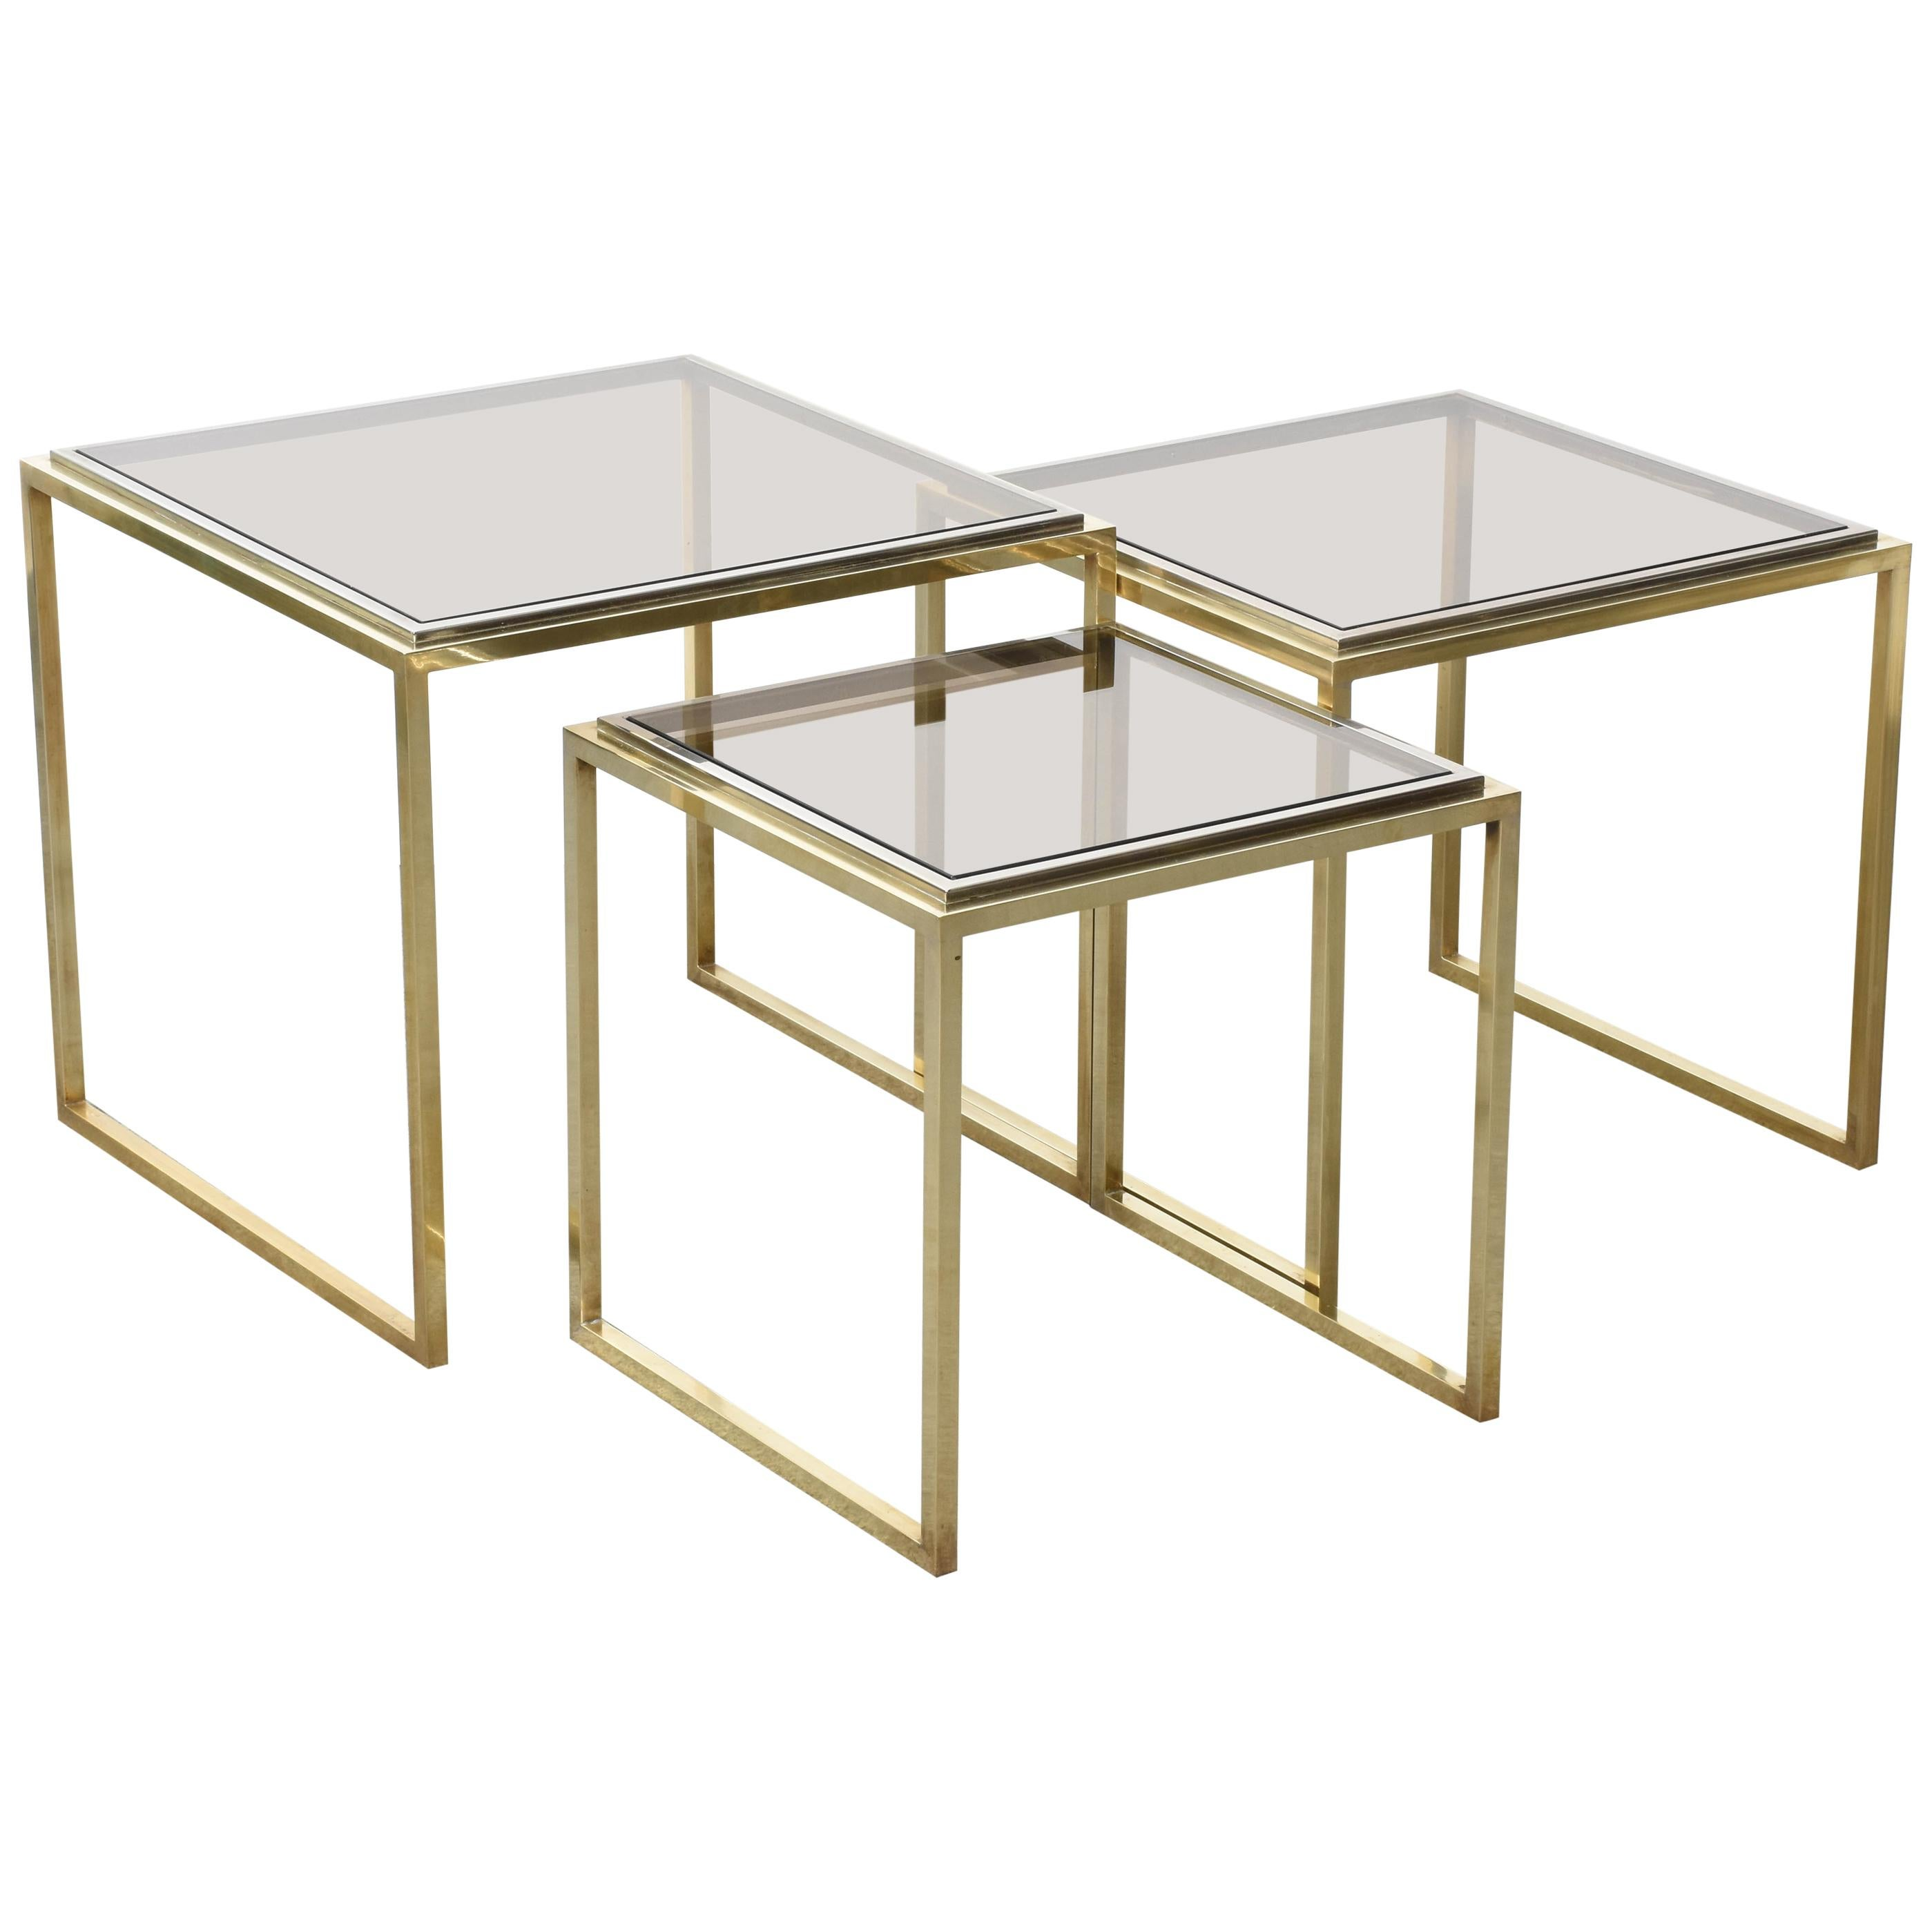 Mid-Century Modern Chrome and Brass Smoked Glass Italian Nesting Tables, 1970s